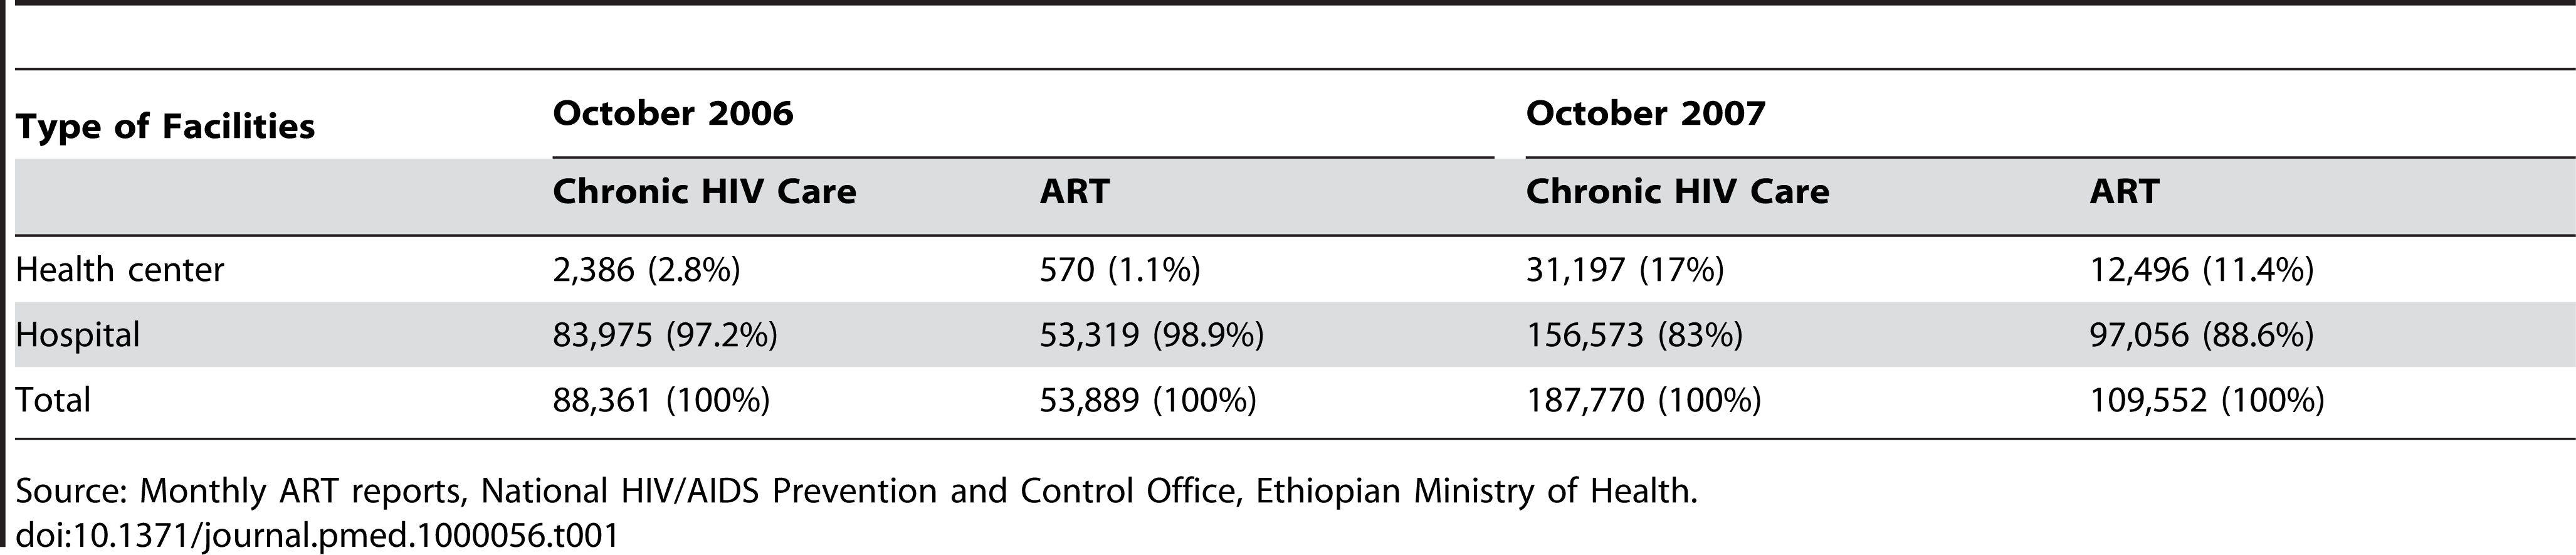 Decentralization of ART and chronic HIV care in Ethiopia, October 2006 and October 2007.